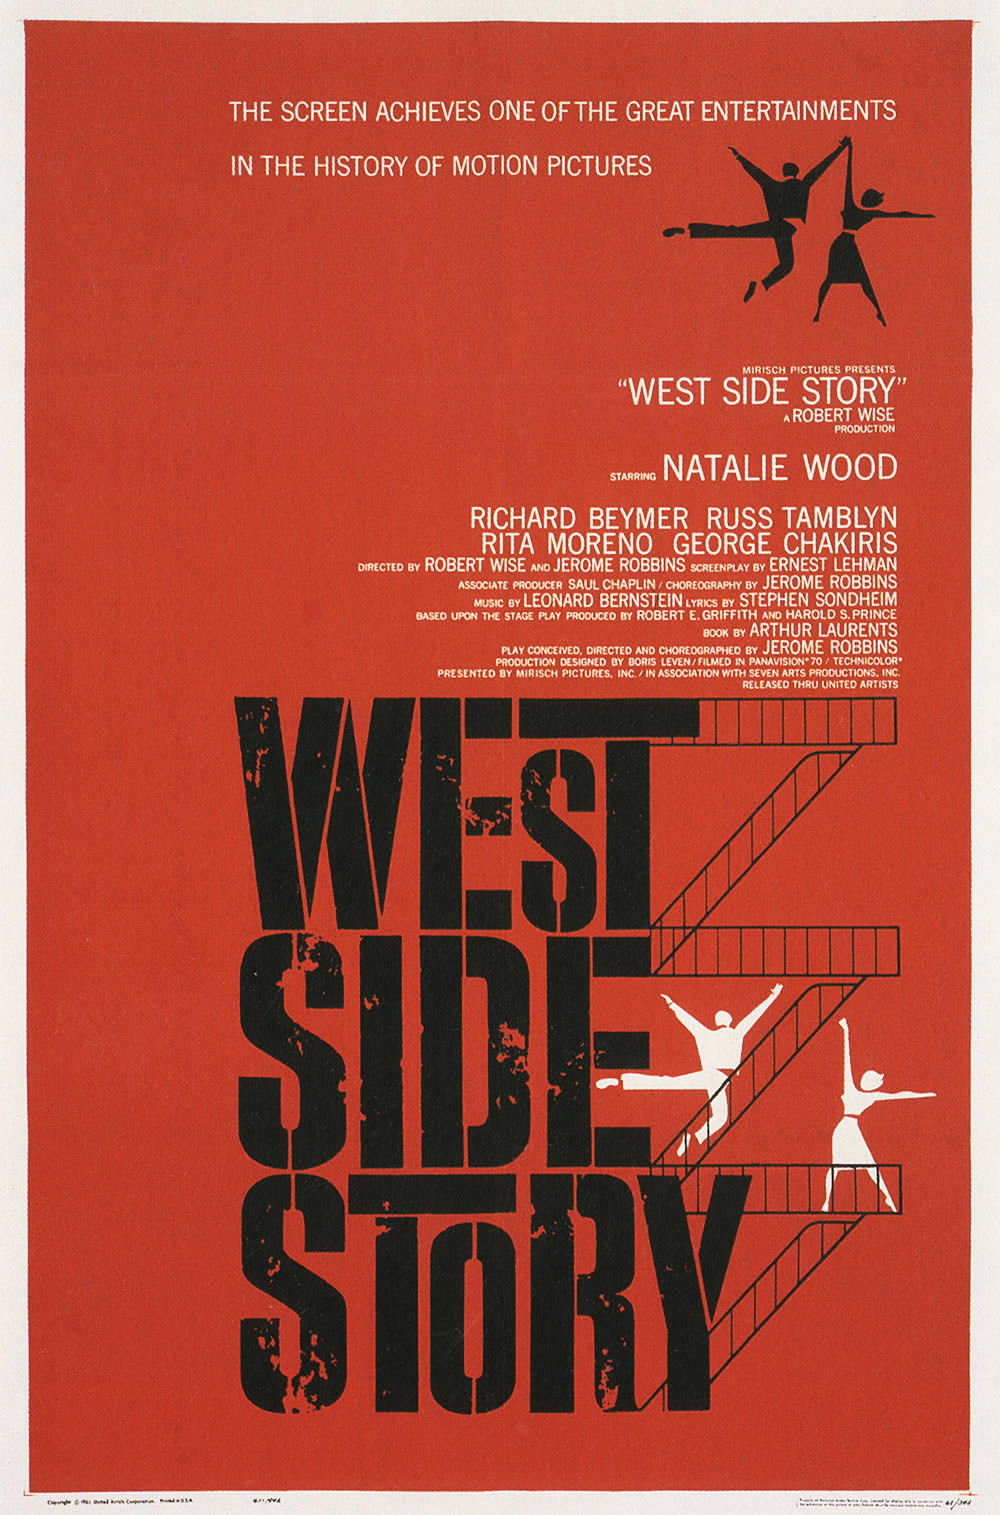 saul-bass-movie-posters-13.jpg